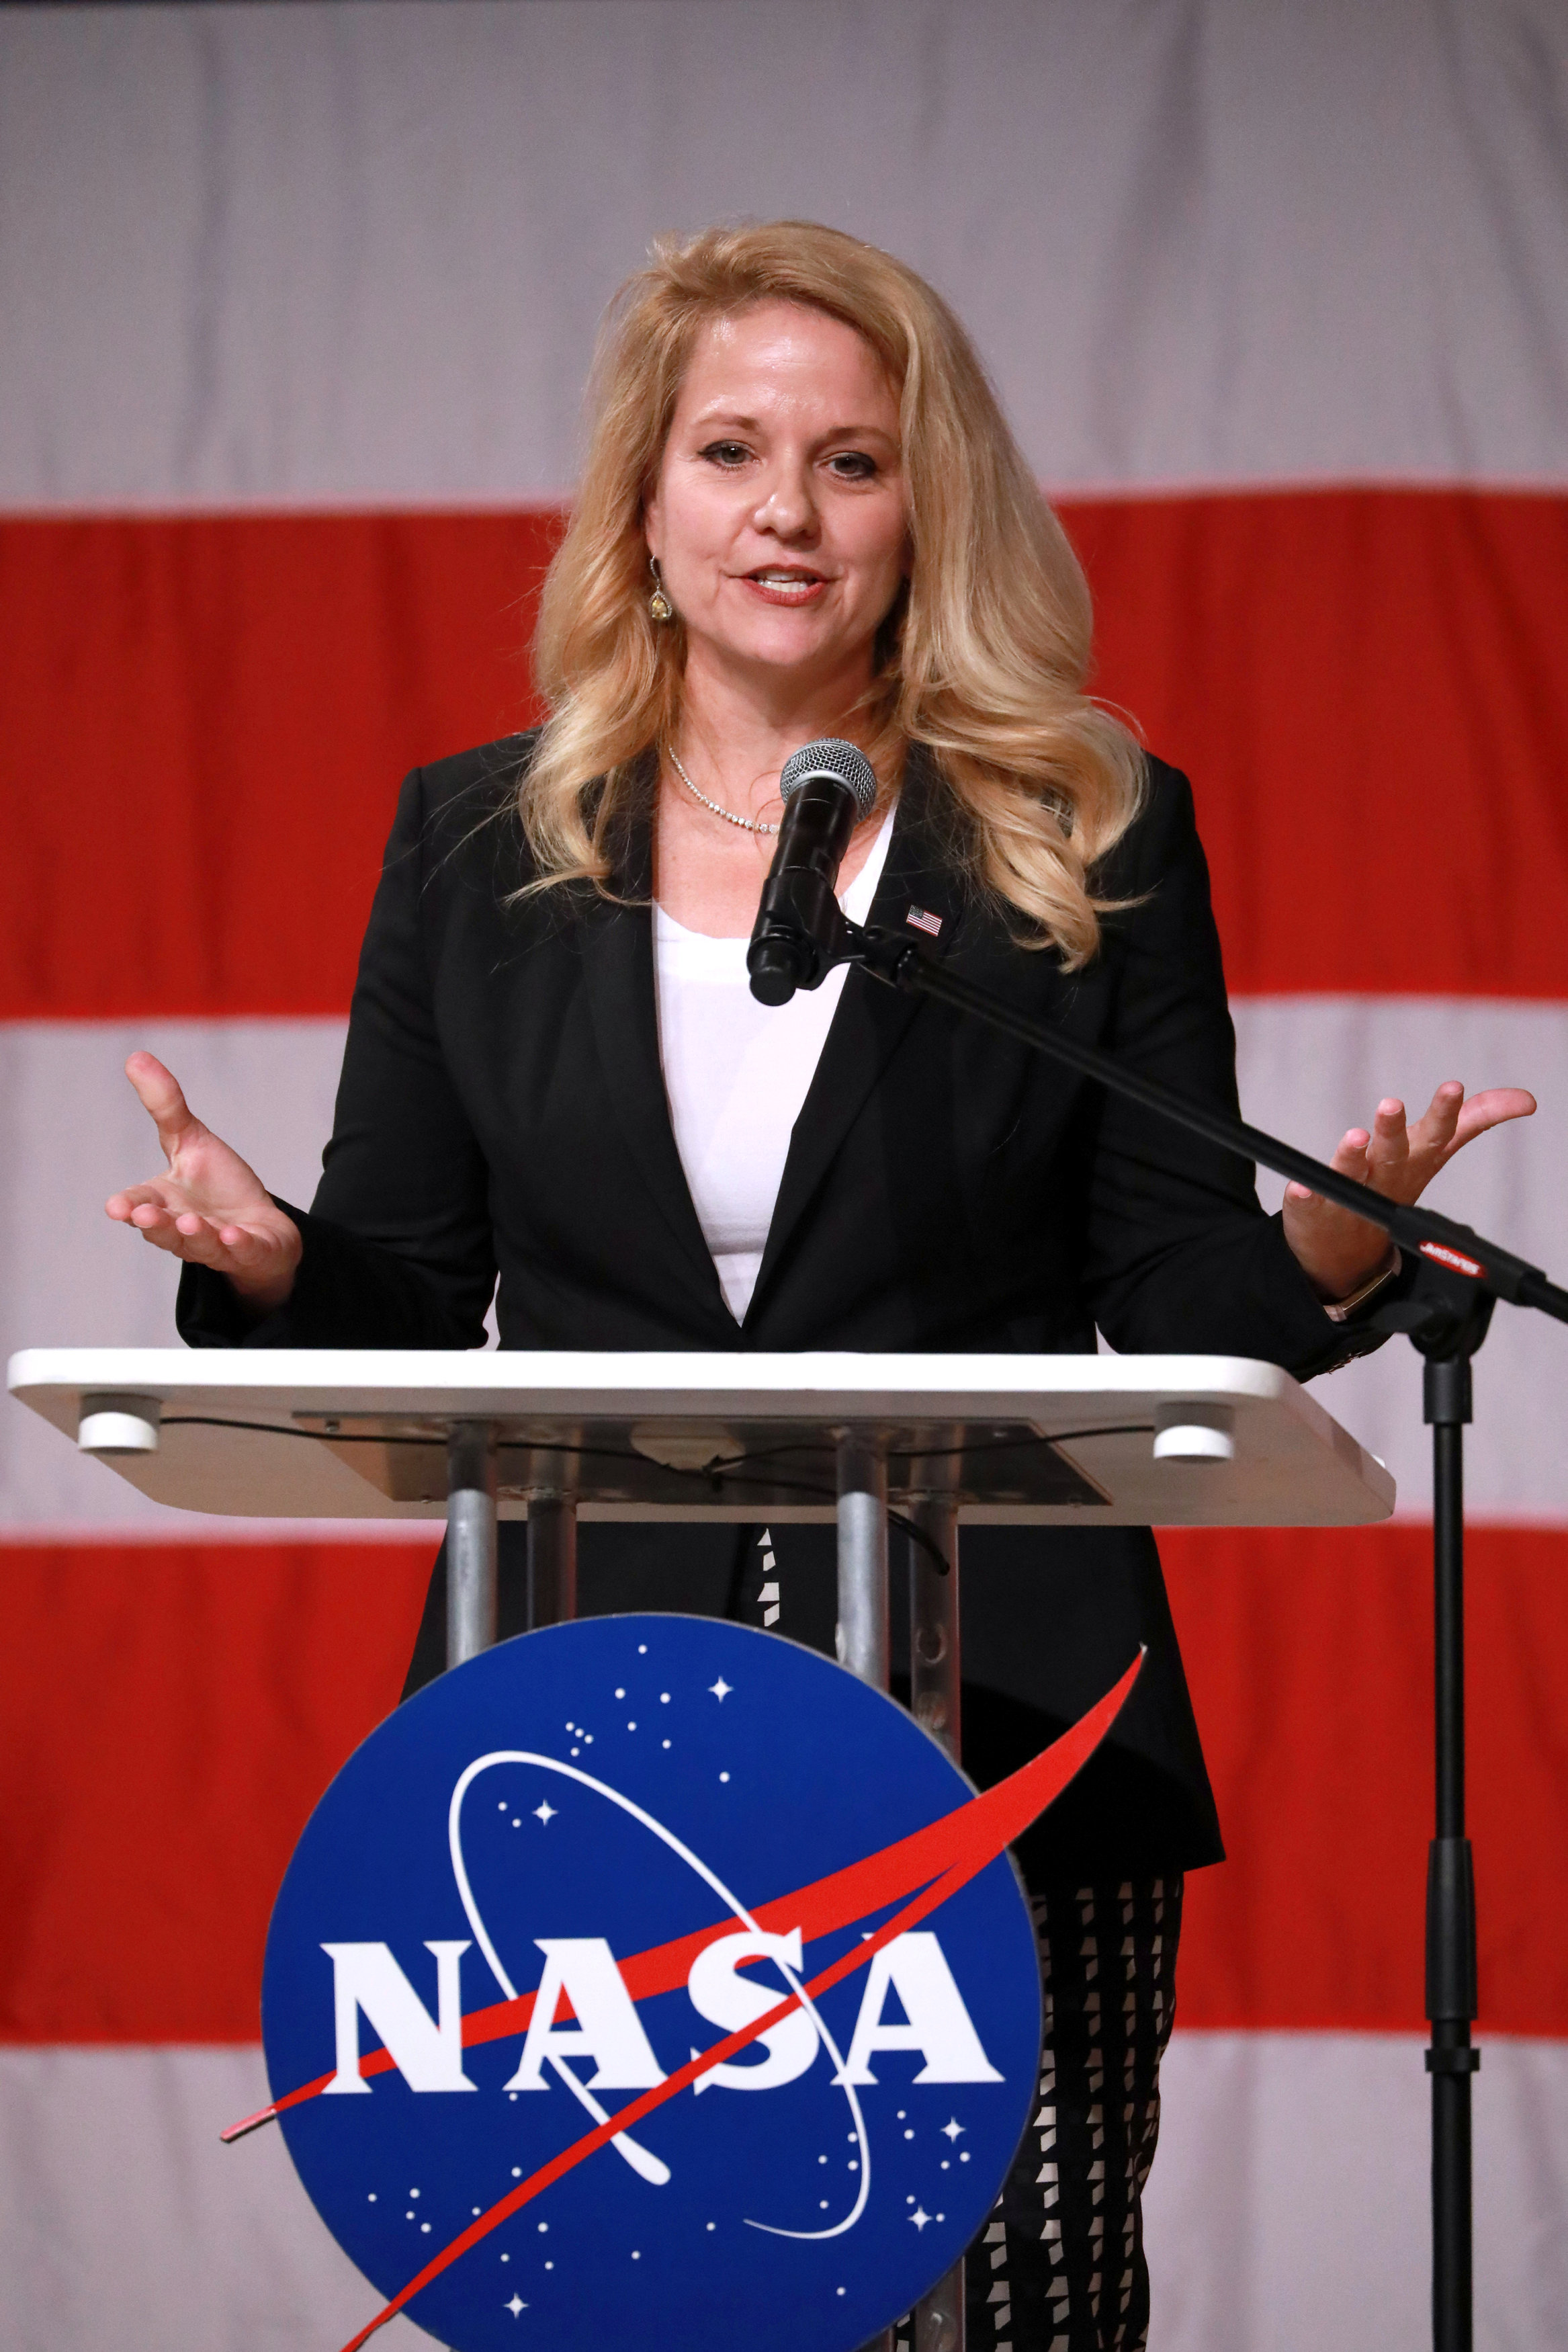 SpaceX COO Shotwell speaks before NASA announces crew assignments for Boeing CST-100 Starliner and SpaceX Crew Dragon in Houston